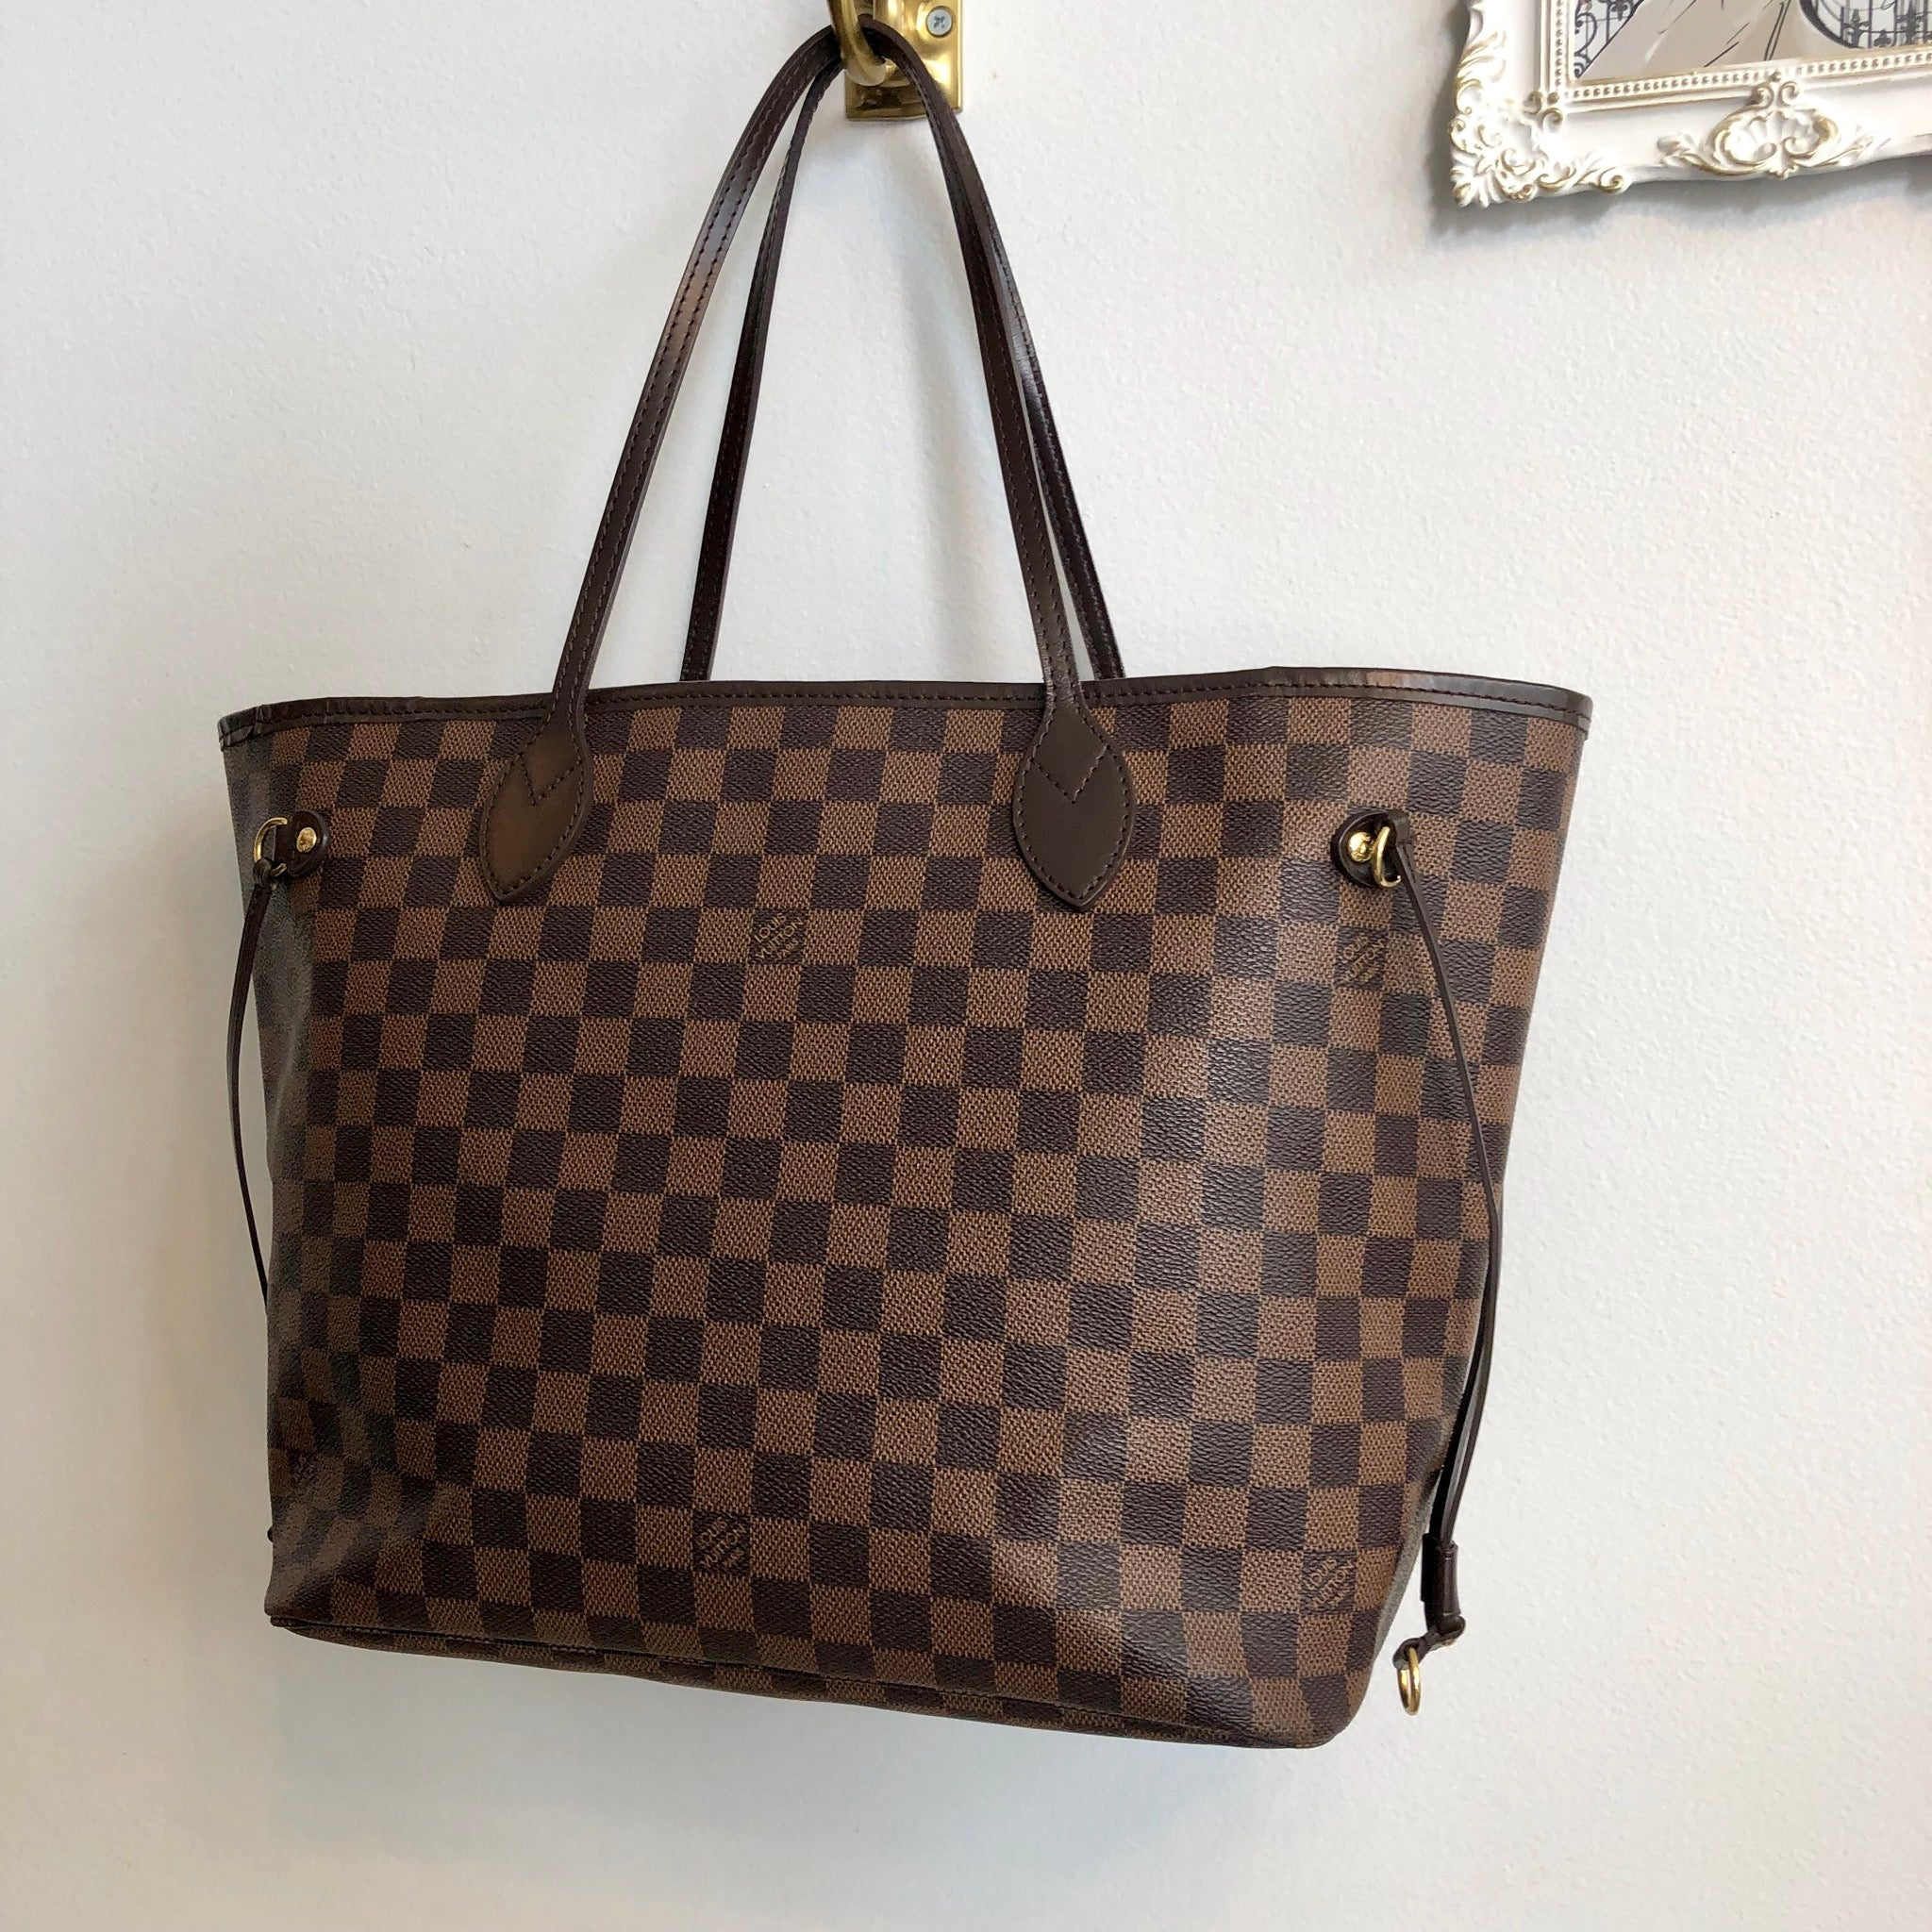 Authentic LOUIS VUITTON Neverfull MM Damier Ebene